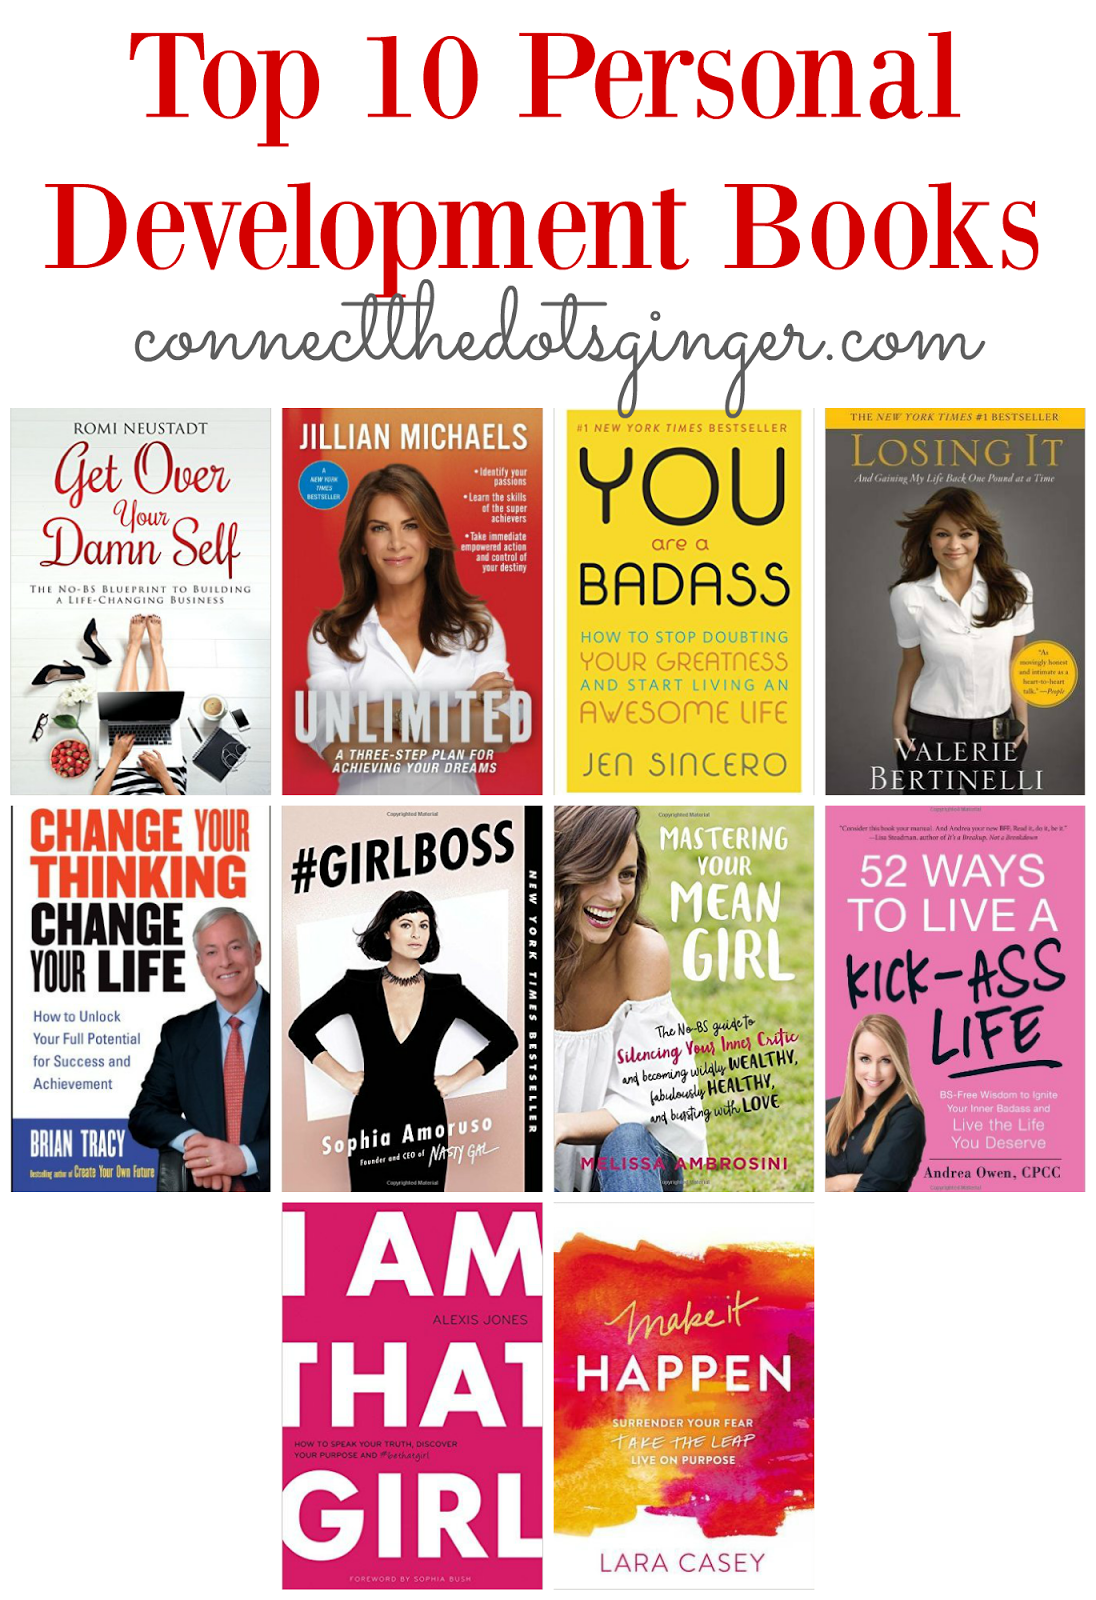 Connect the dots ginger becky allen top 10 personal development 1 get over your damn self the no bs blueprint to building a life changing business romi neustadt malvernweather Choice Image